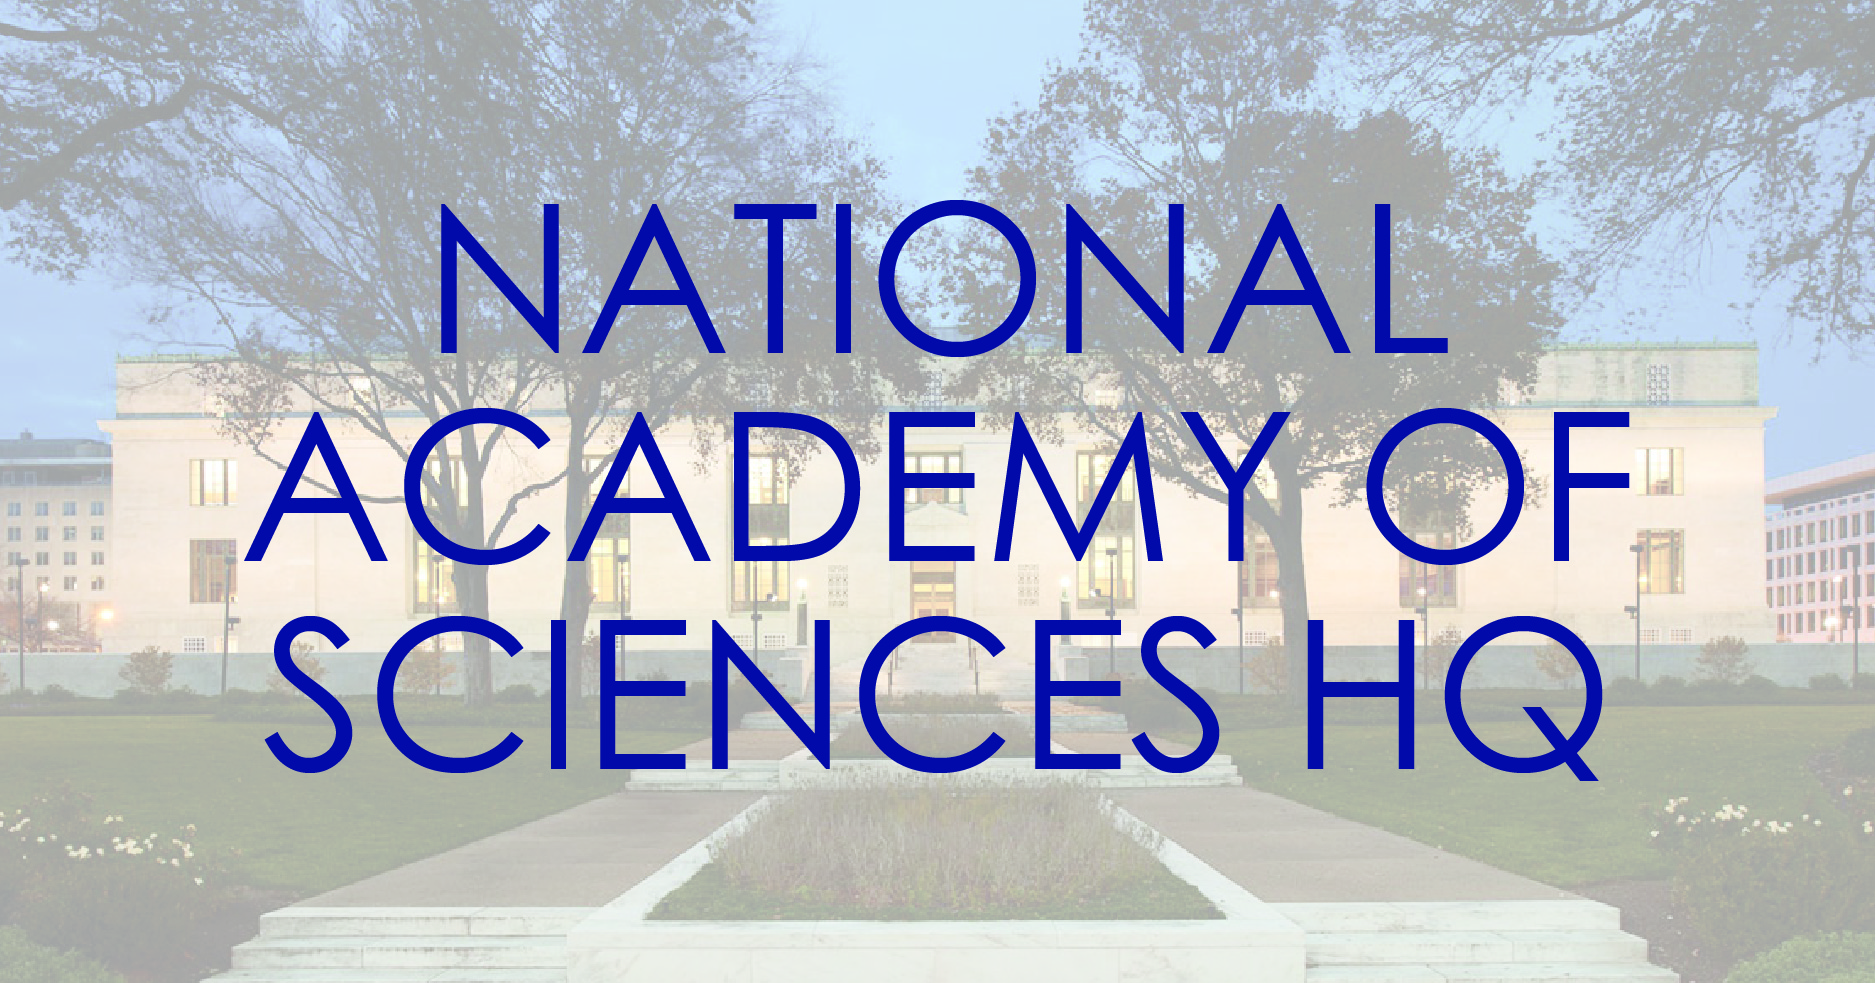 National Academy of Sciences HQ-01.jpg